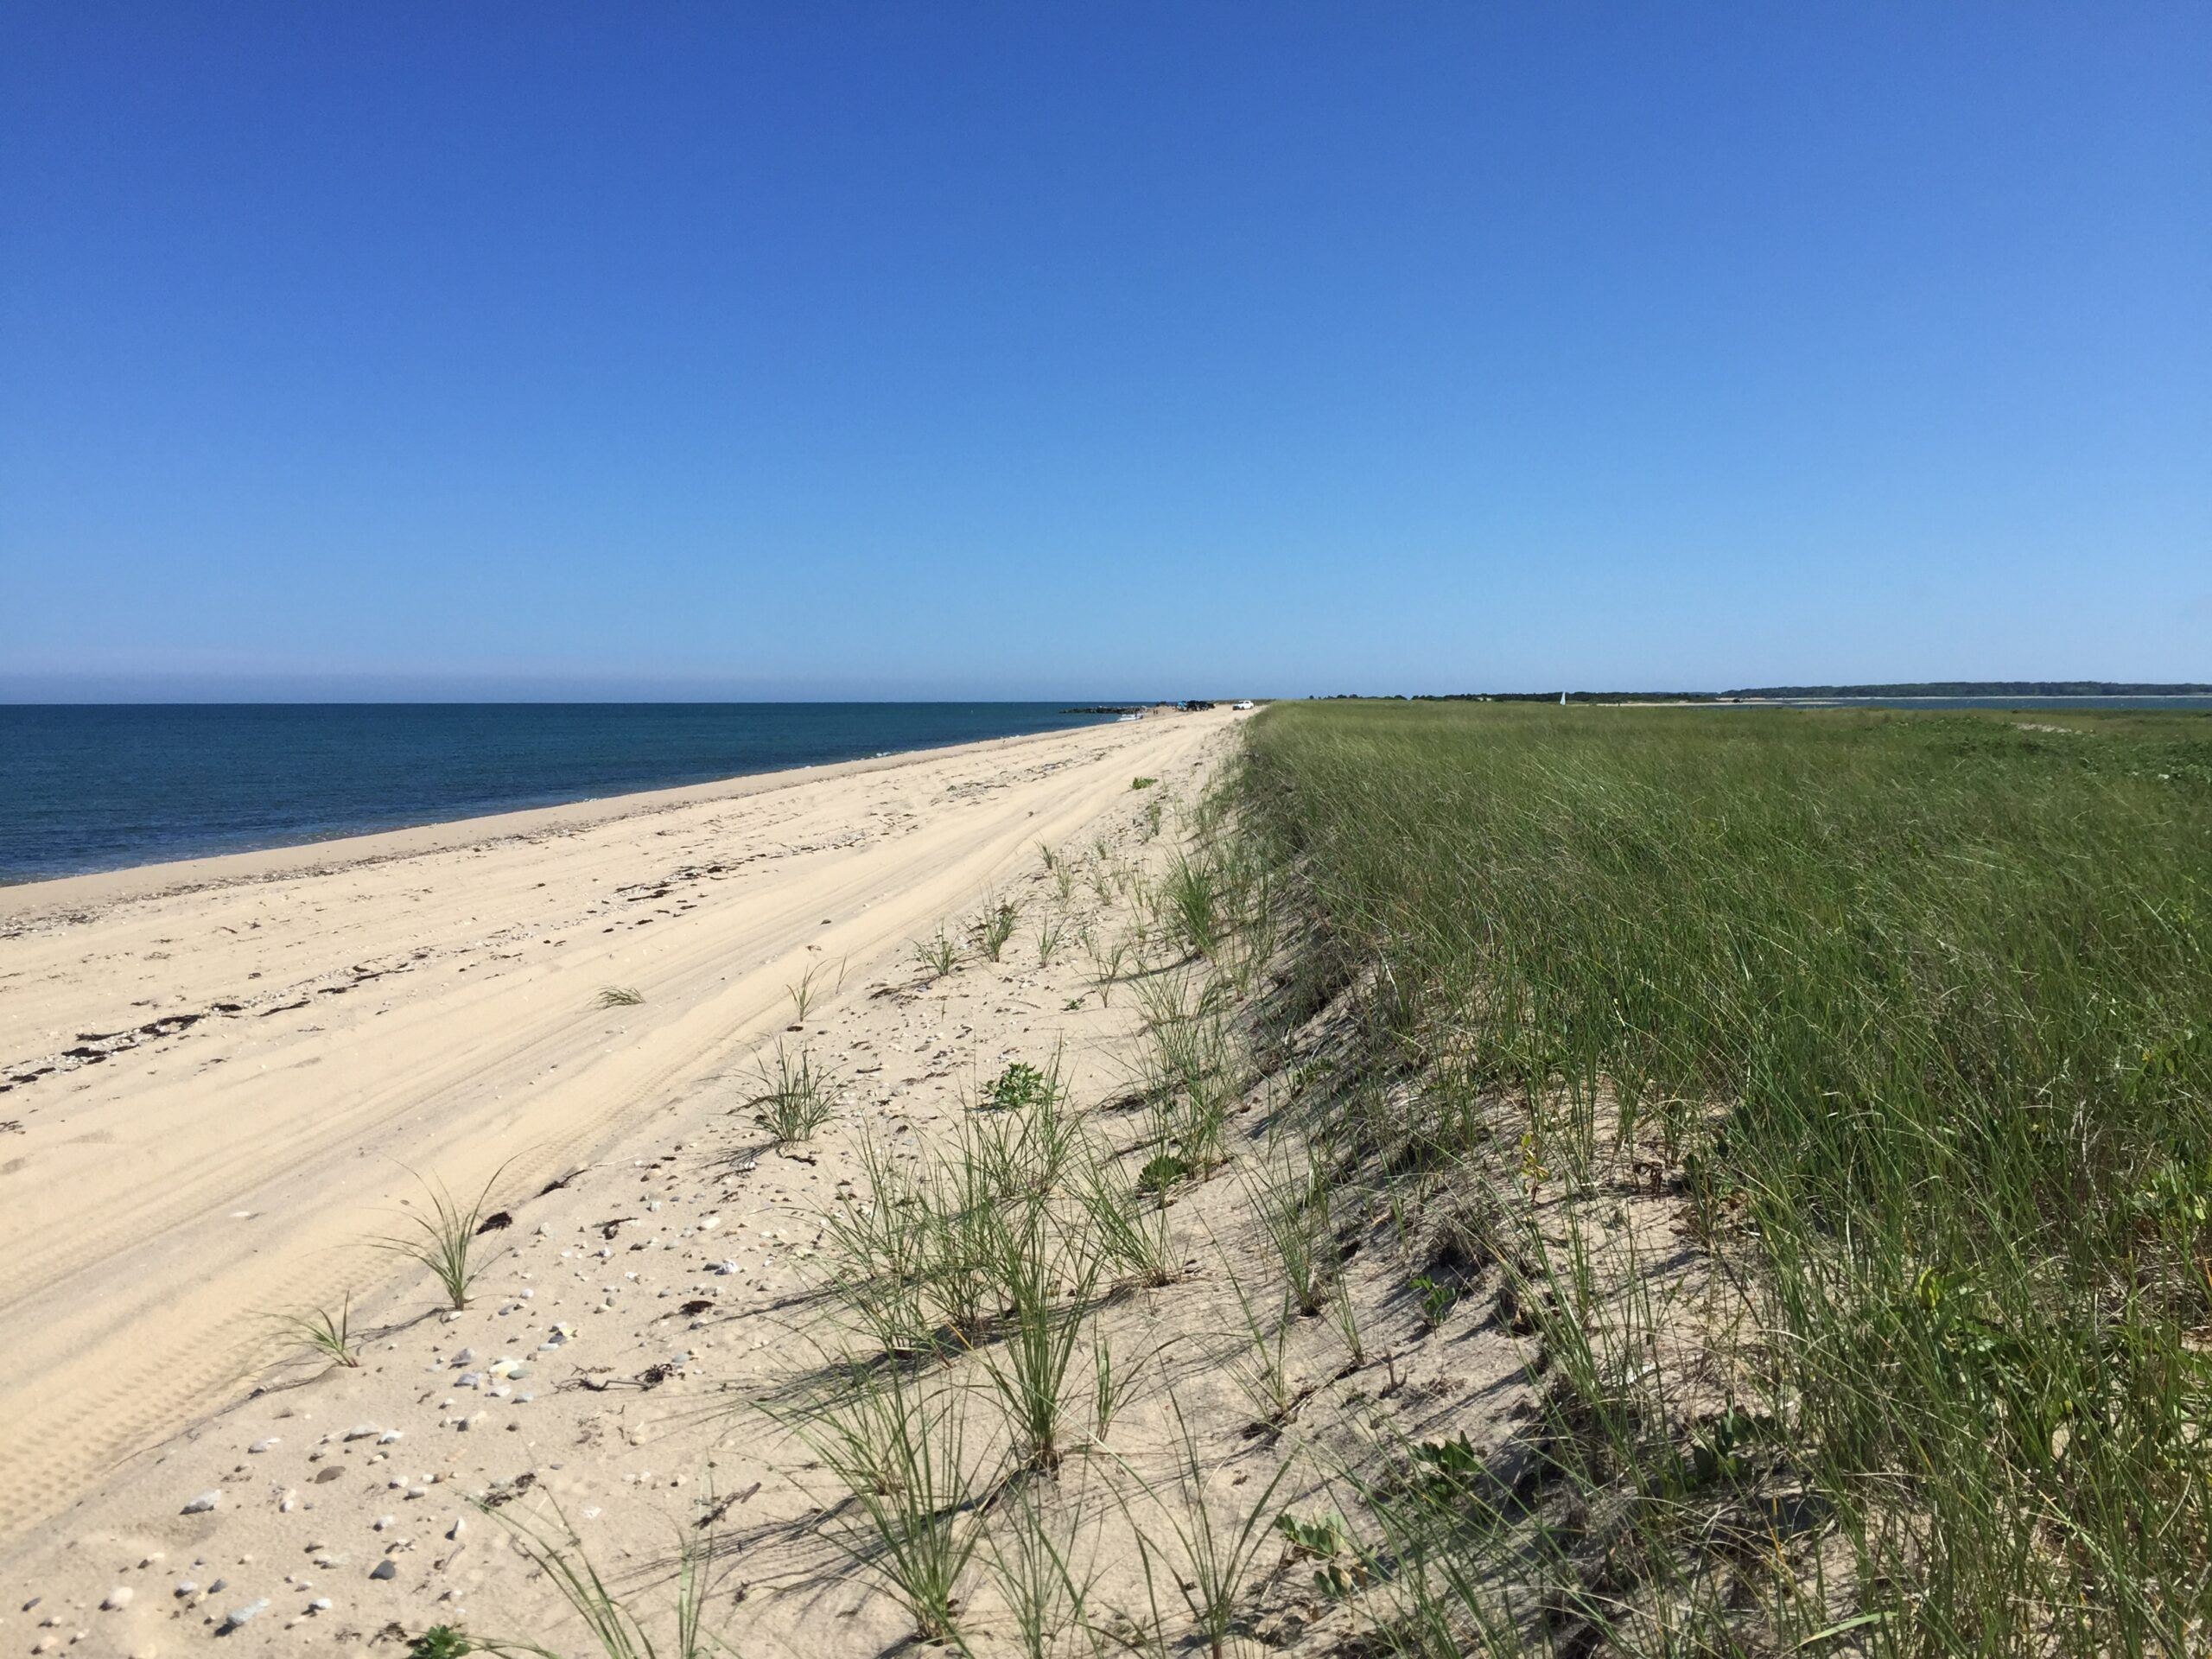 Oversand vehicle trail along a beach on Martha's Vineyard